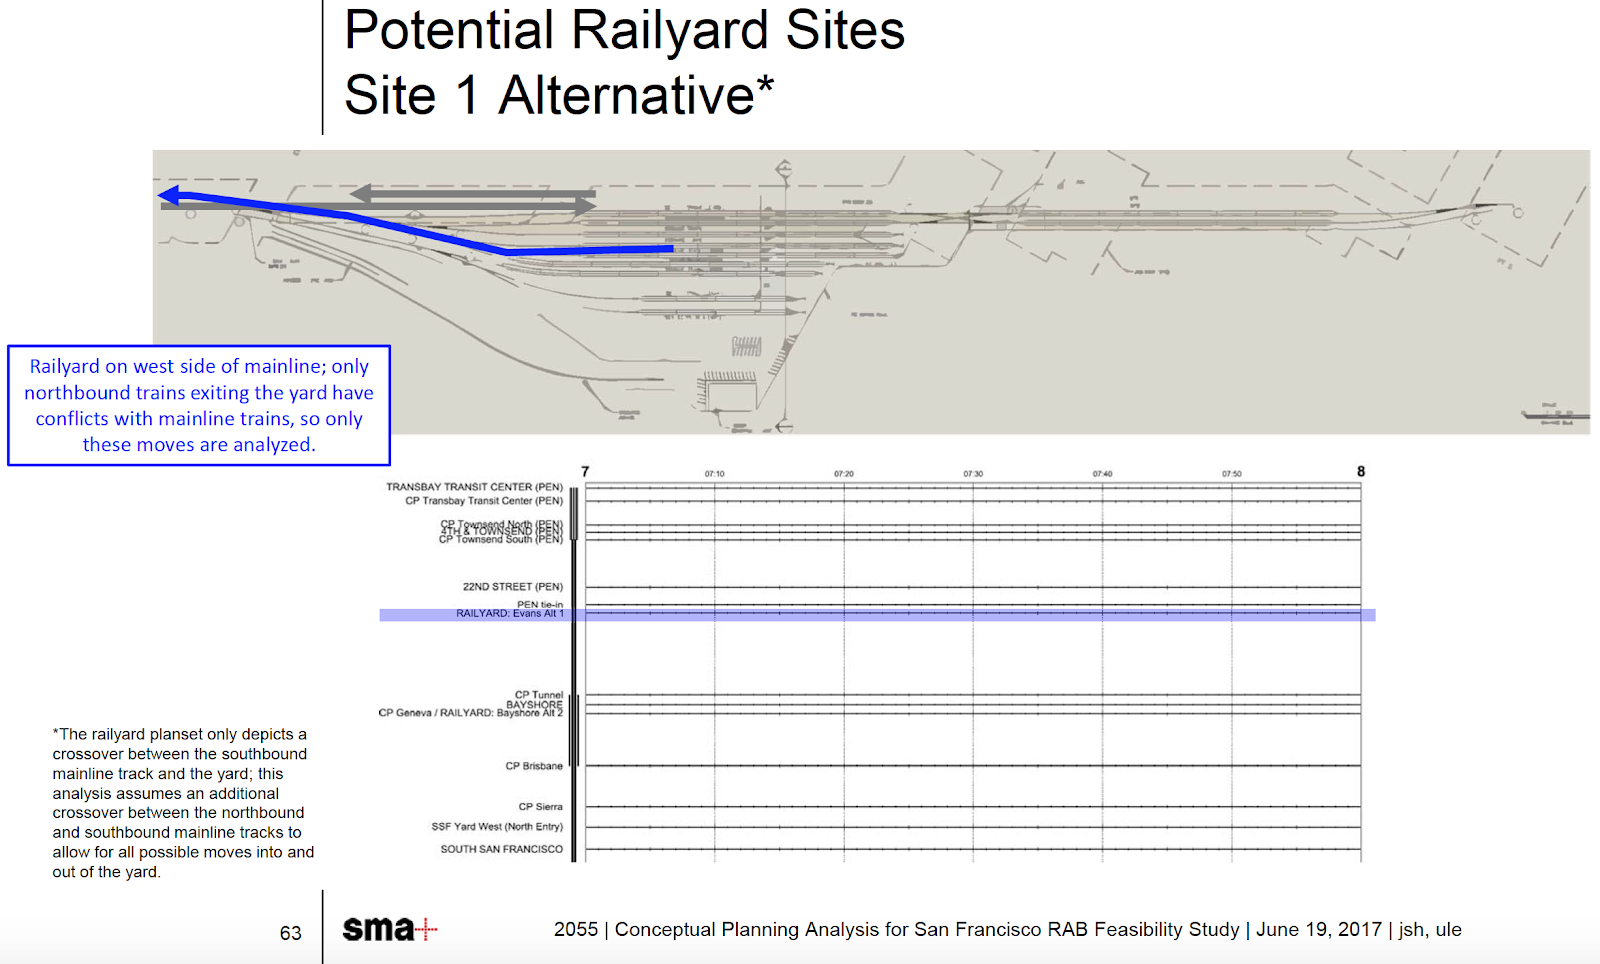 looking at these diagrams, it immediately becomes obvious that such a  railyard would preclude the proposed oakdale caltrain station previously  studied by